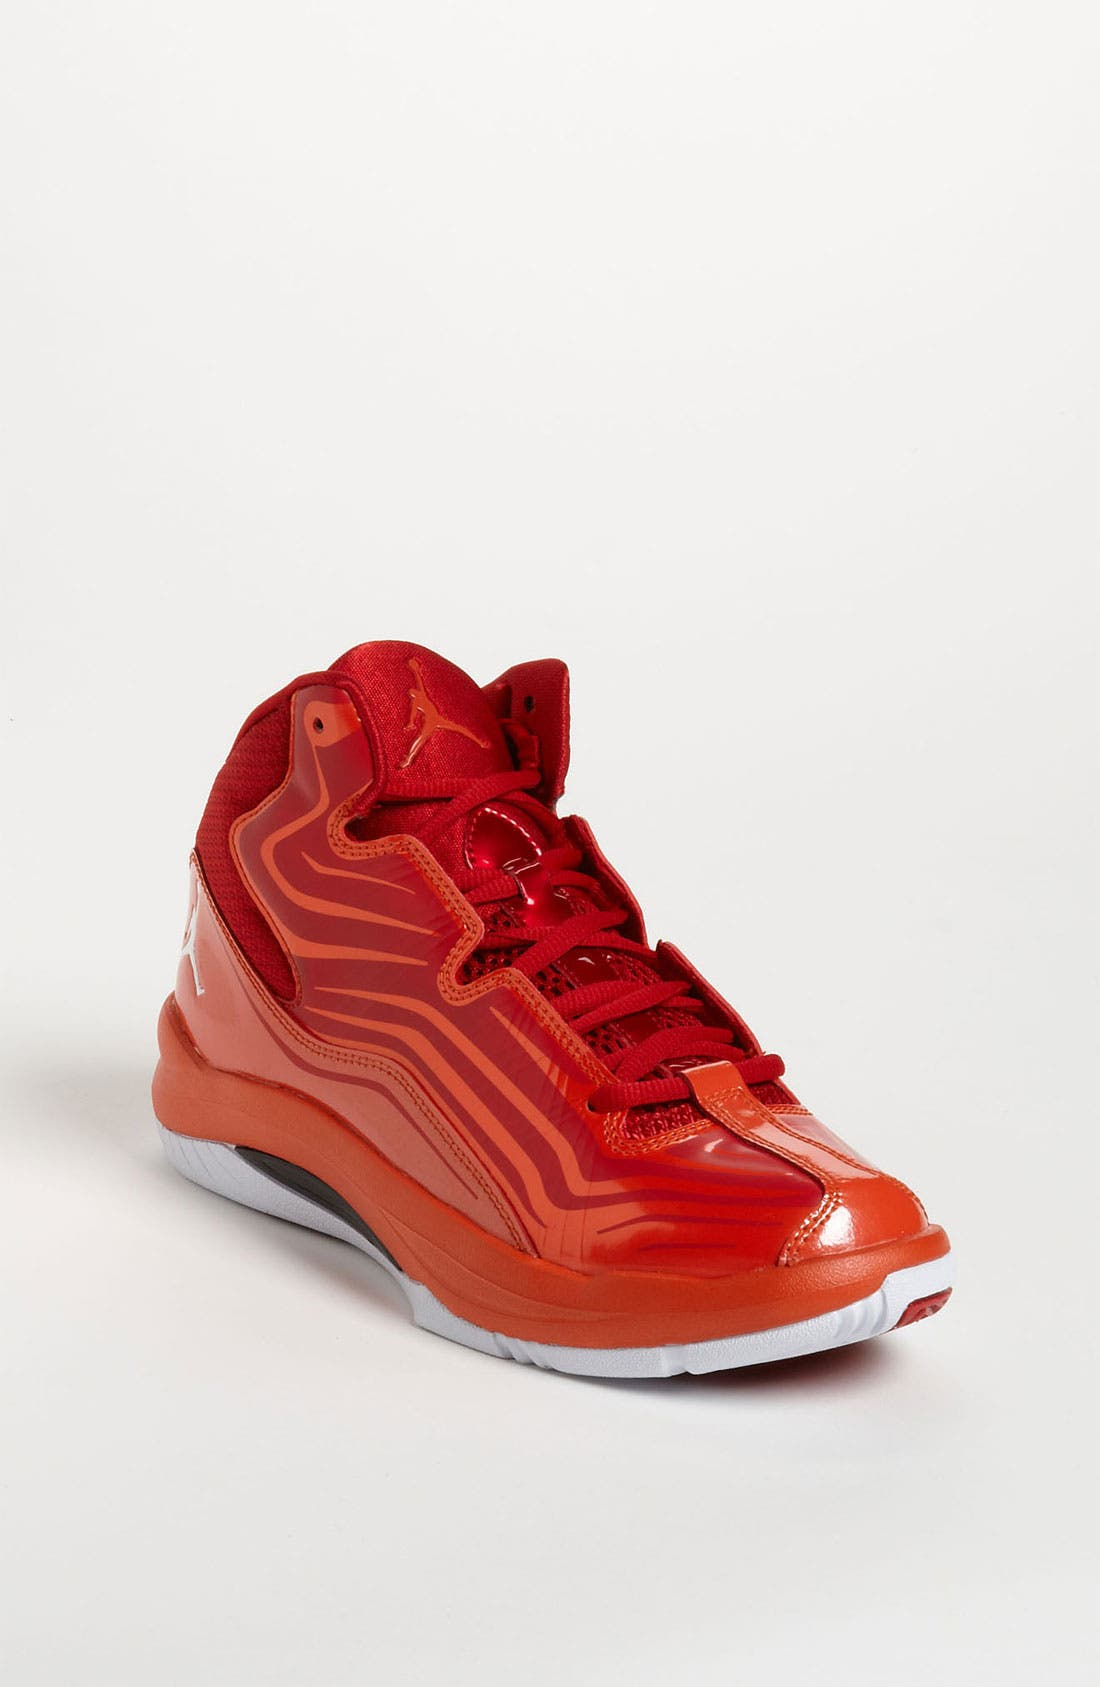 Alternate Image 1 Selected - Nike 'Jordan Aero Mania' Sneaker (Big Kid)